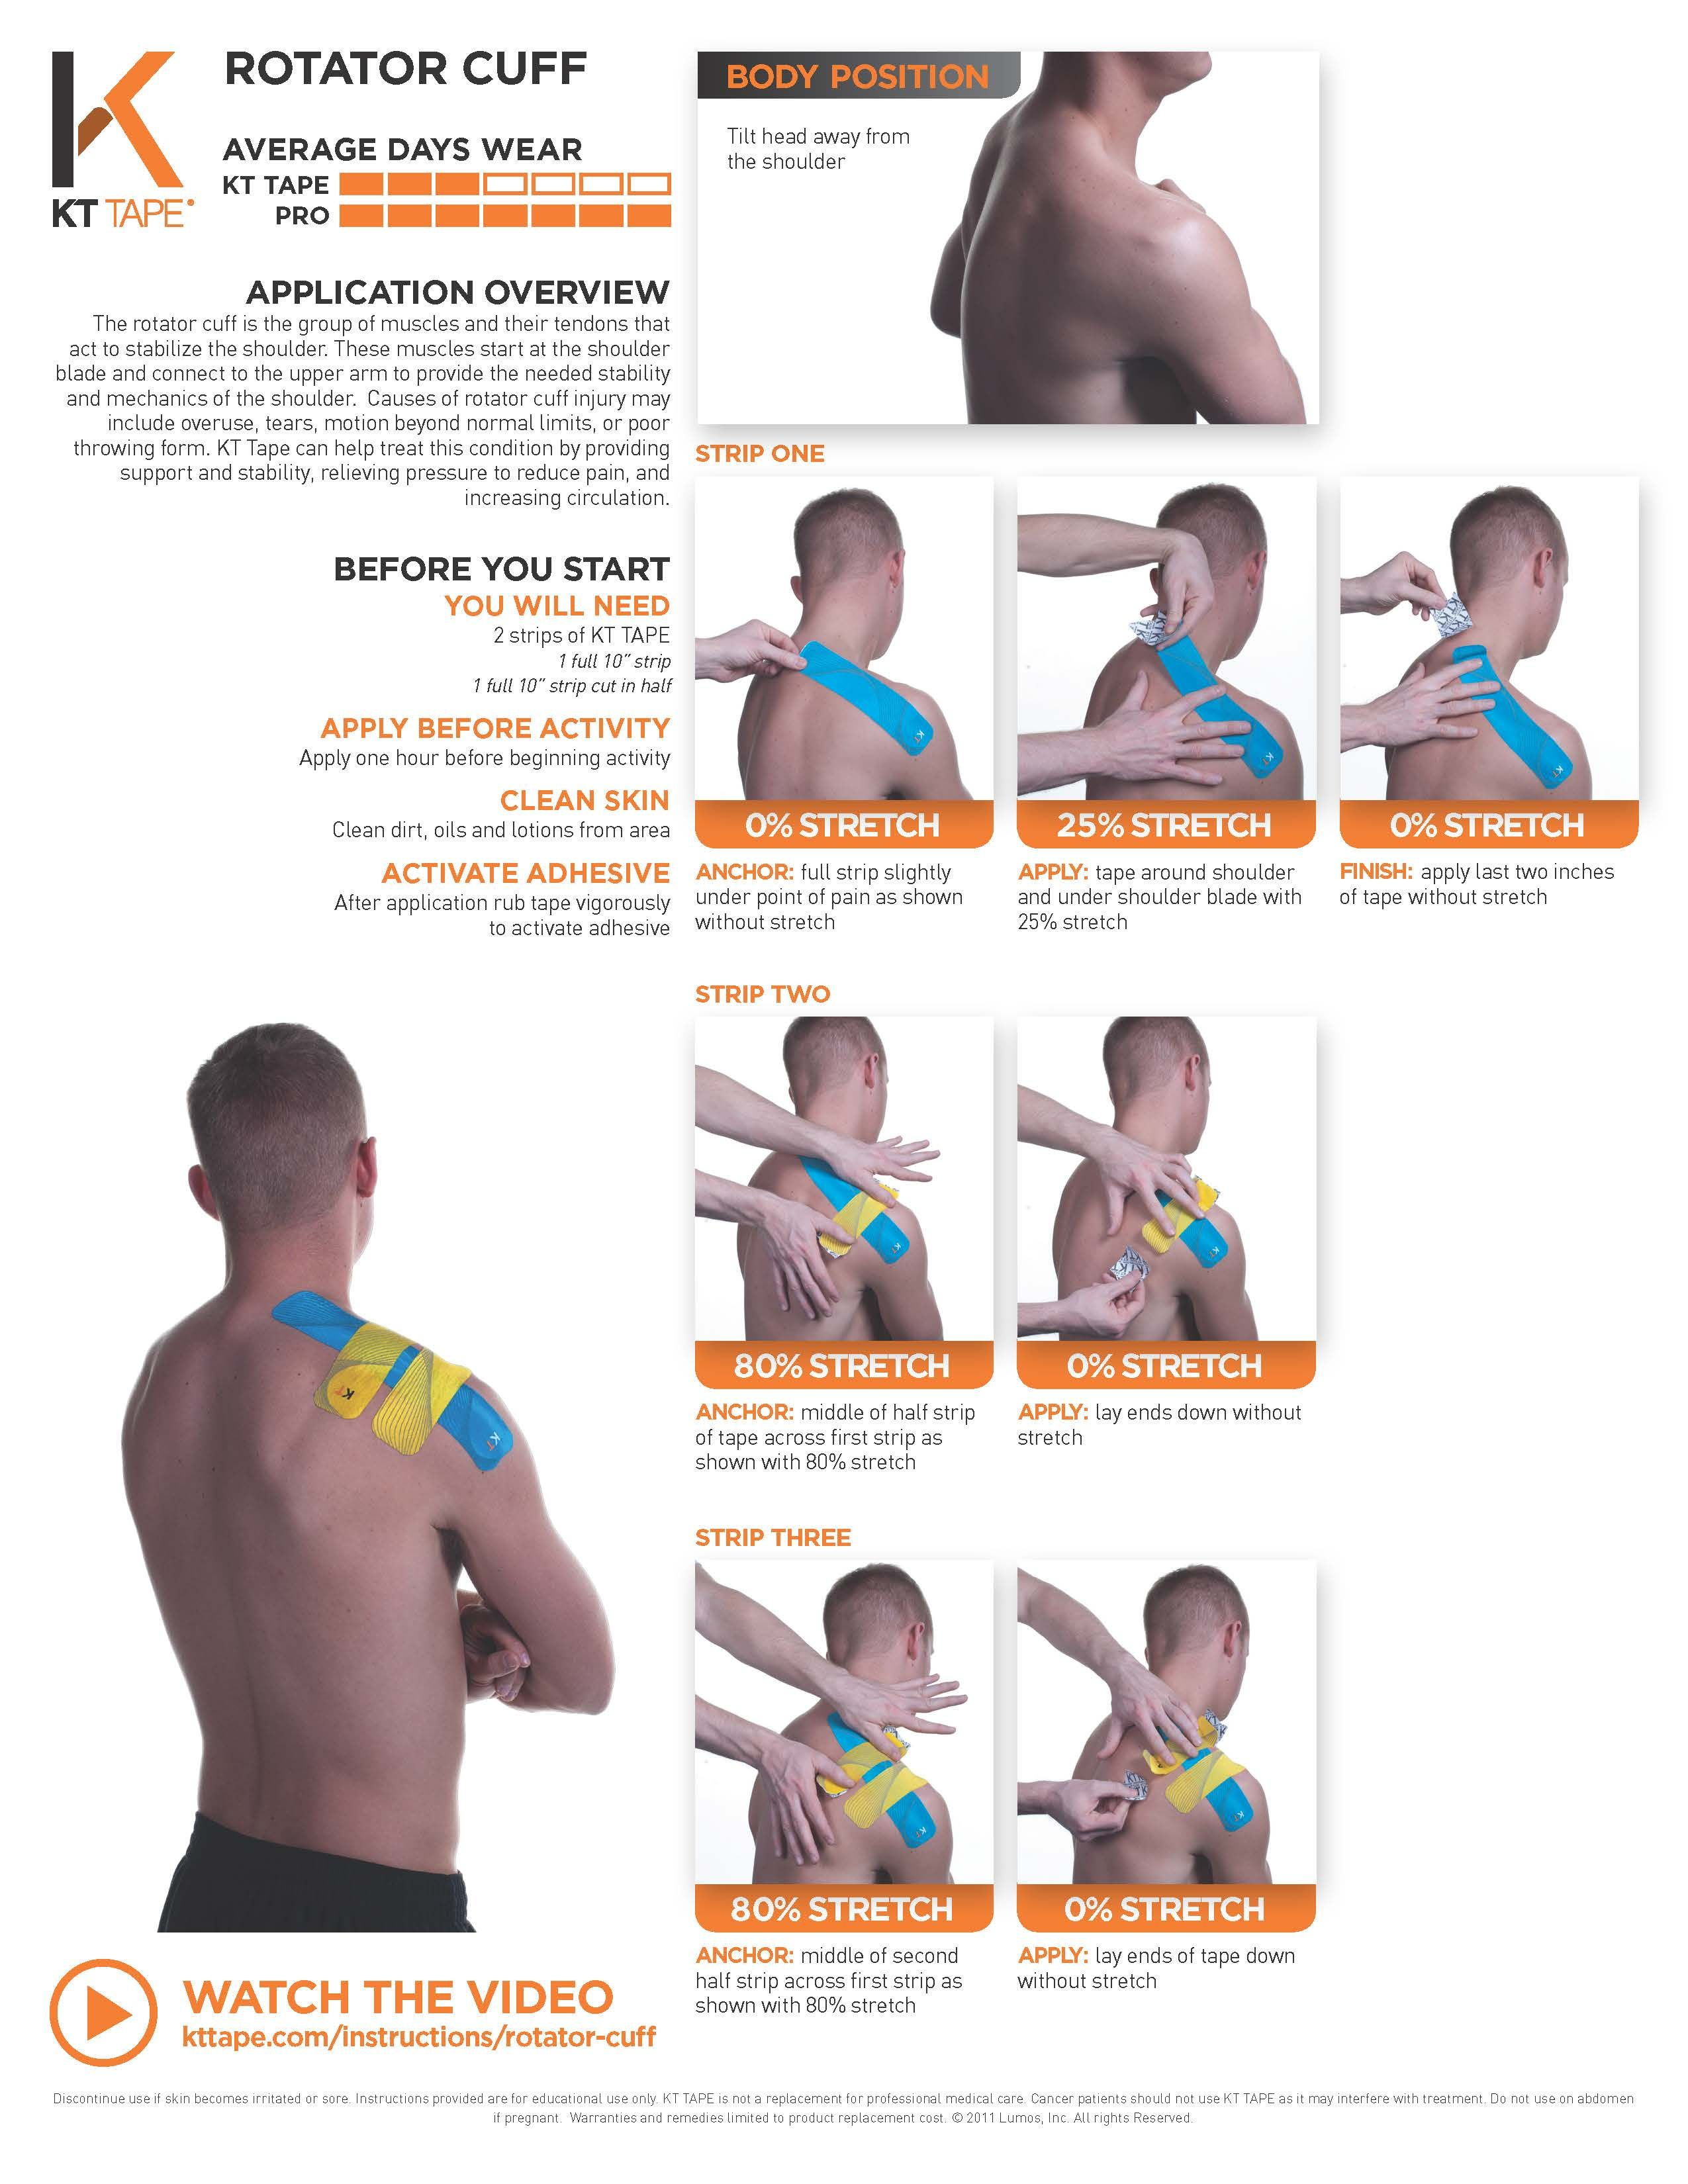 KT Tape Instructions for Rotator Cuff